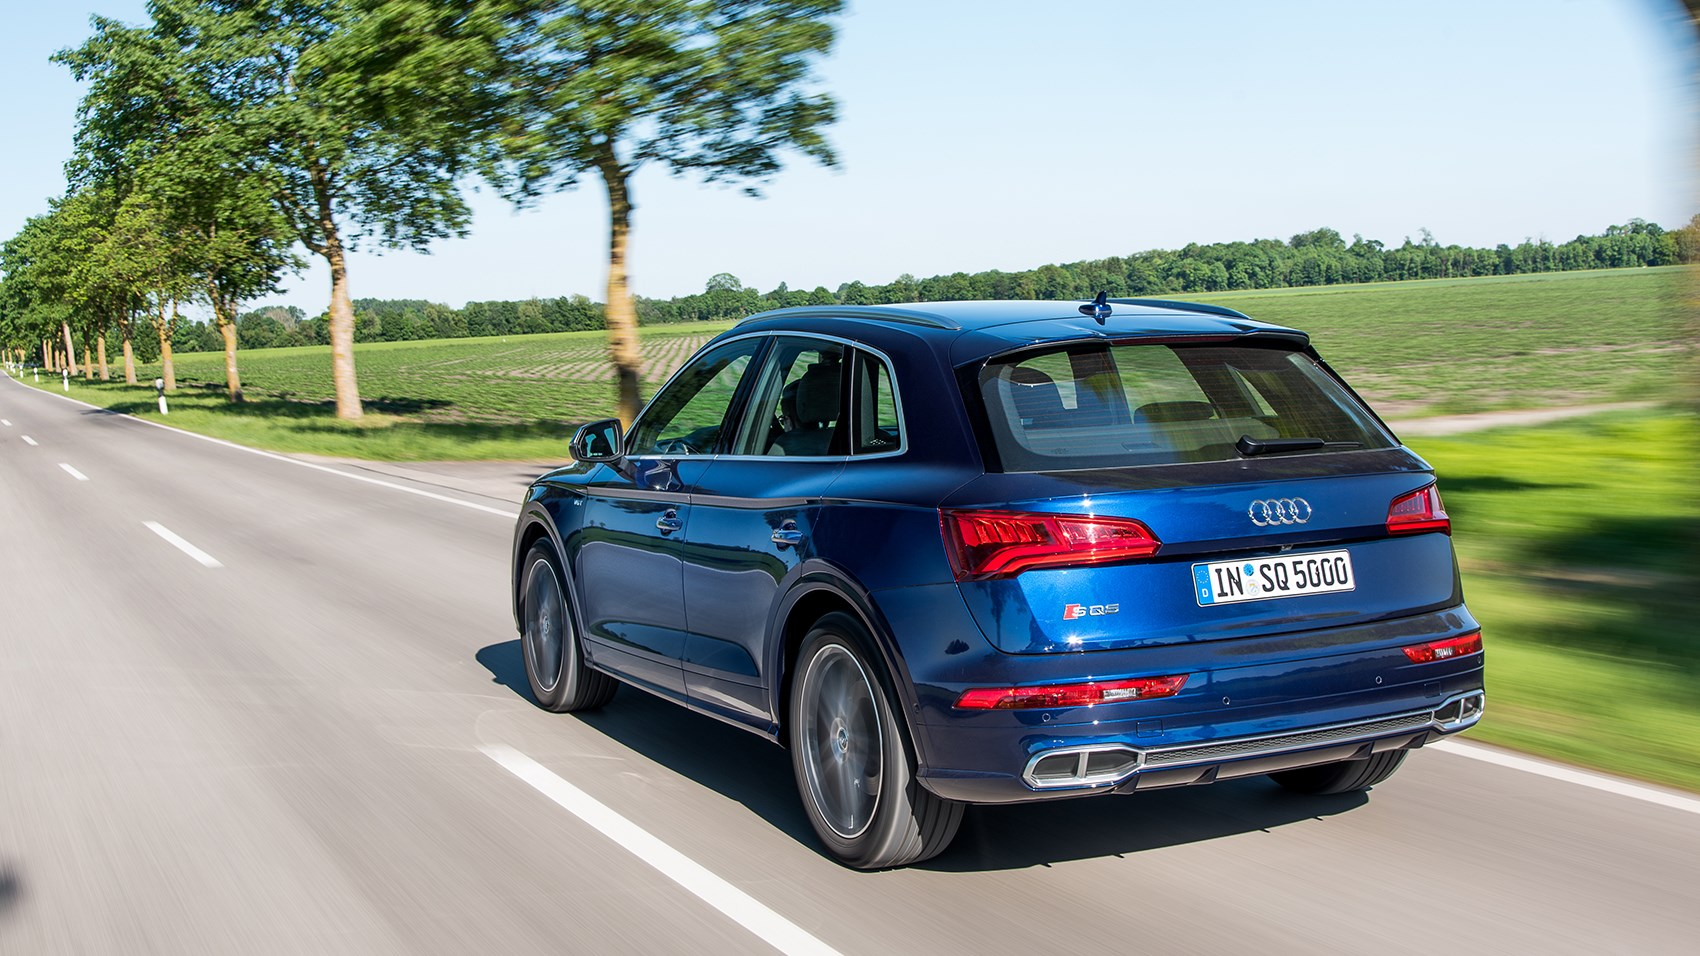 Audi Q5 Lease Deals >> New Audi SQ5 (2017) review: the crossover benchmark   CAR Magazine